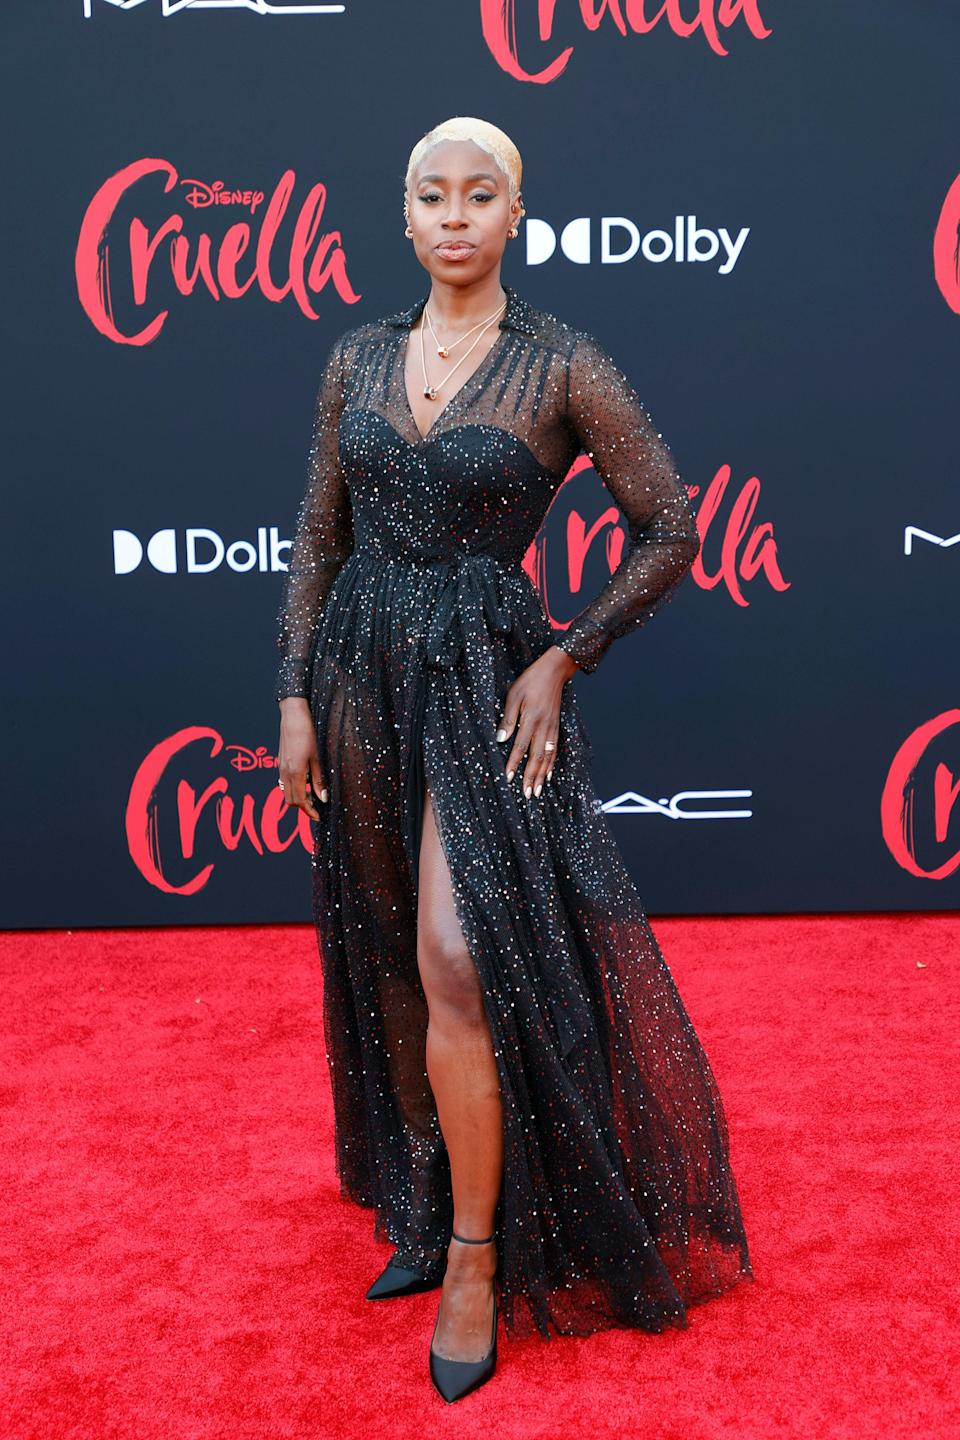 Kirby wore a starry black gown to the <em>Cruella</em> premiere. It had a solid black bodysuit and sparkly mesh fabric over the bodice and skirt.